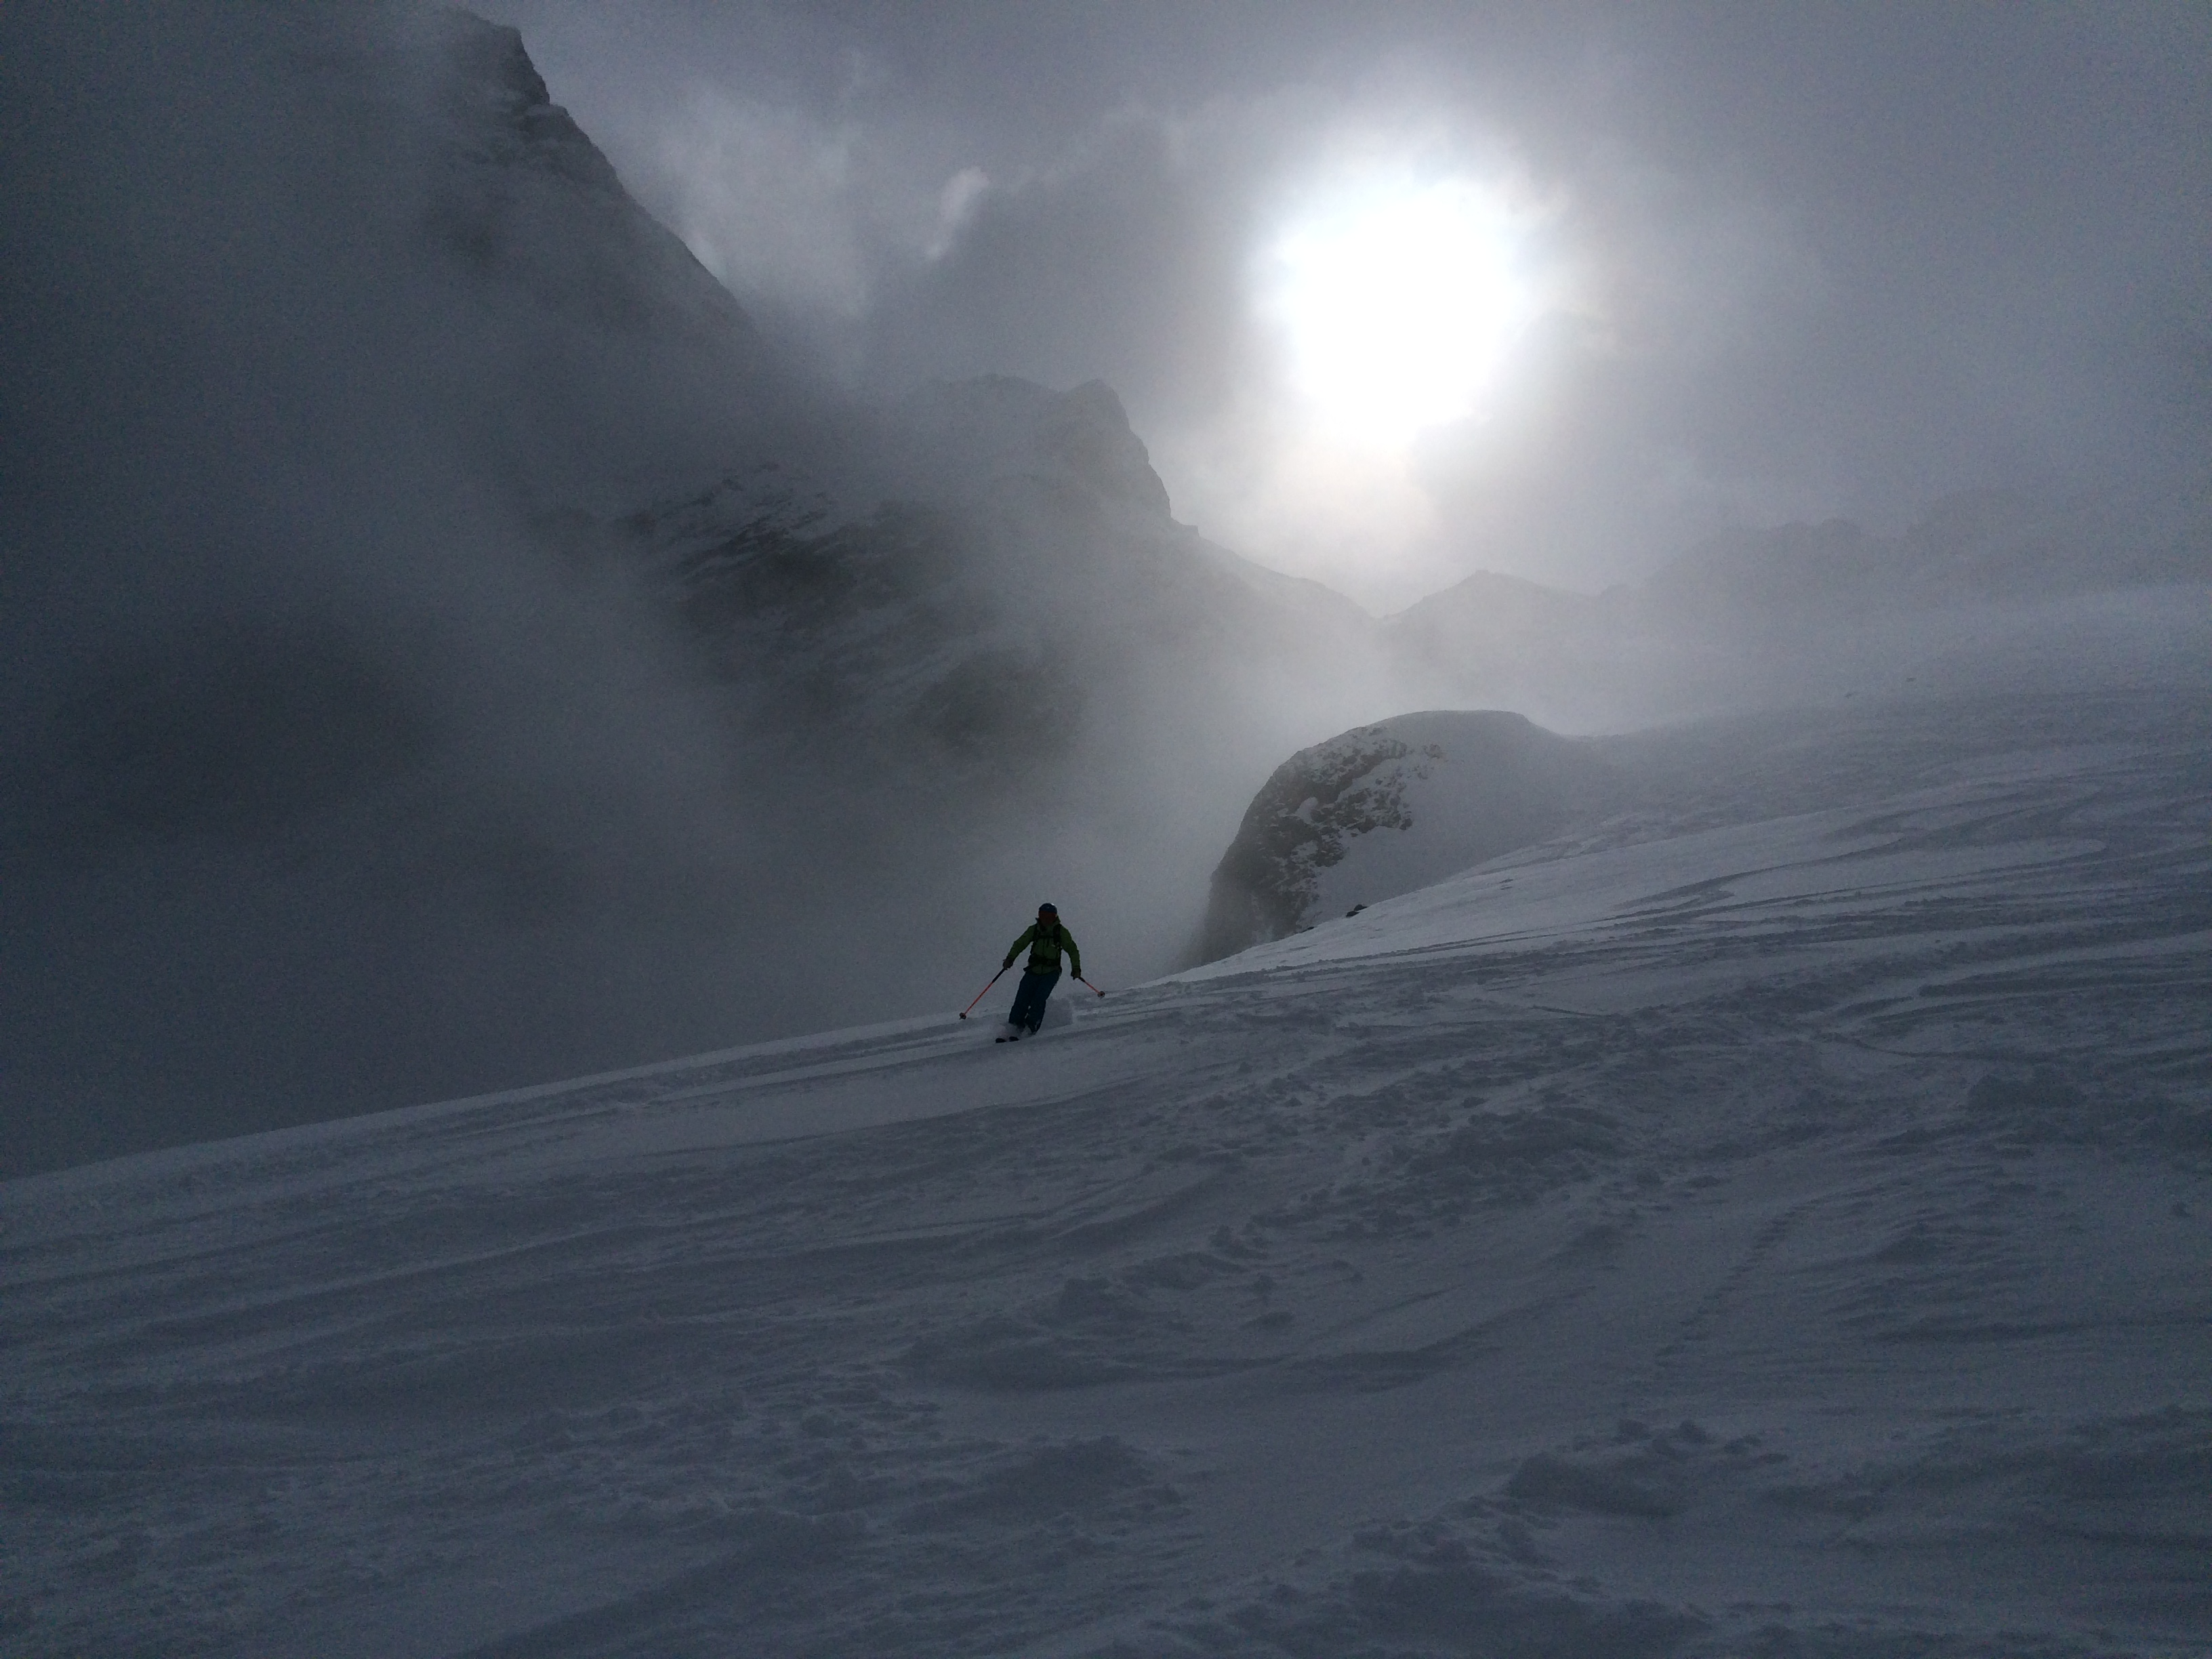 Skiing off piste in the magical place of La Grave